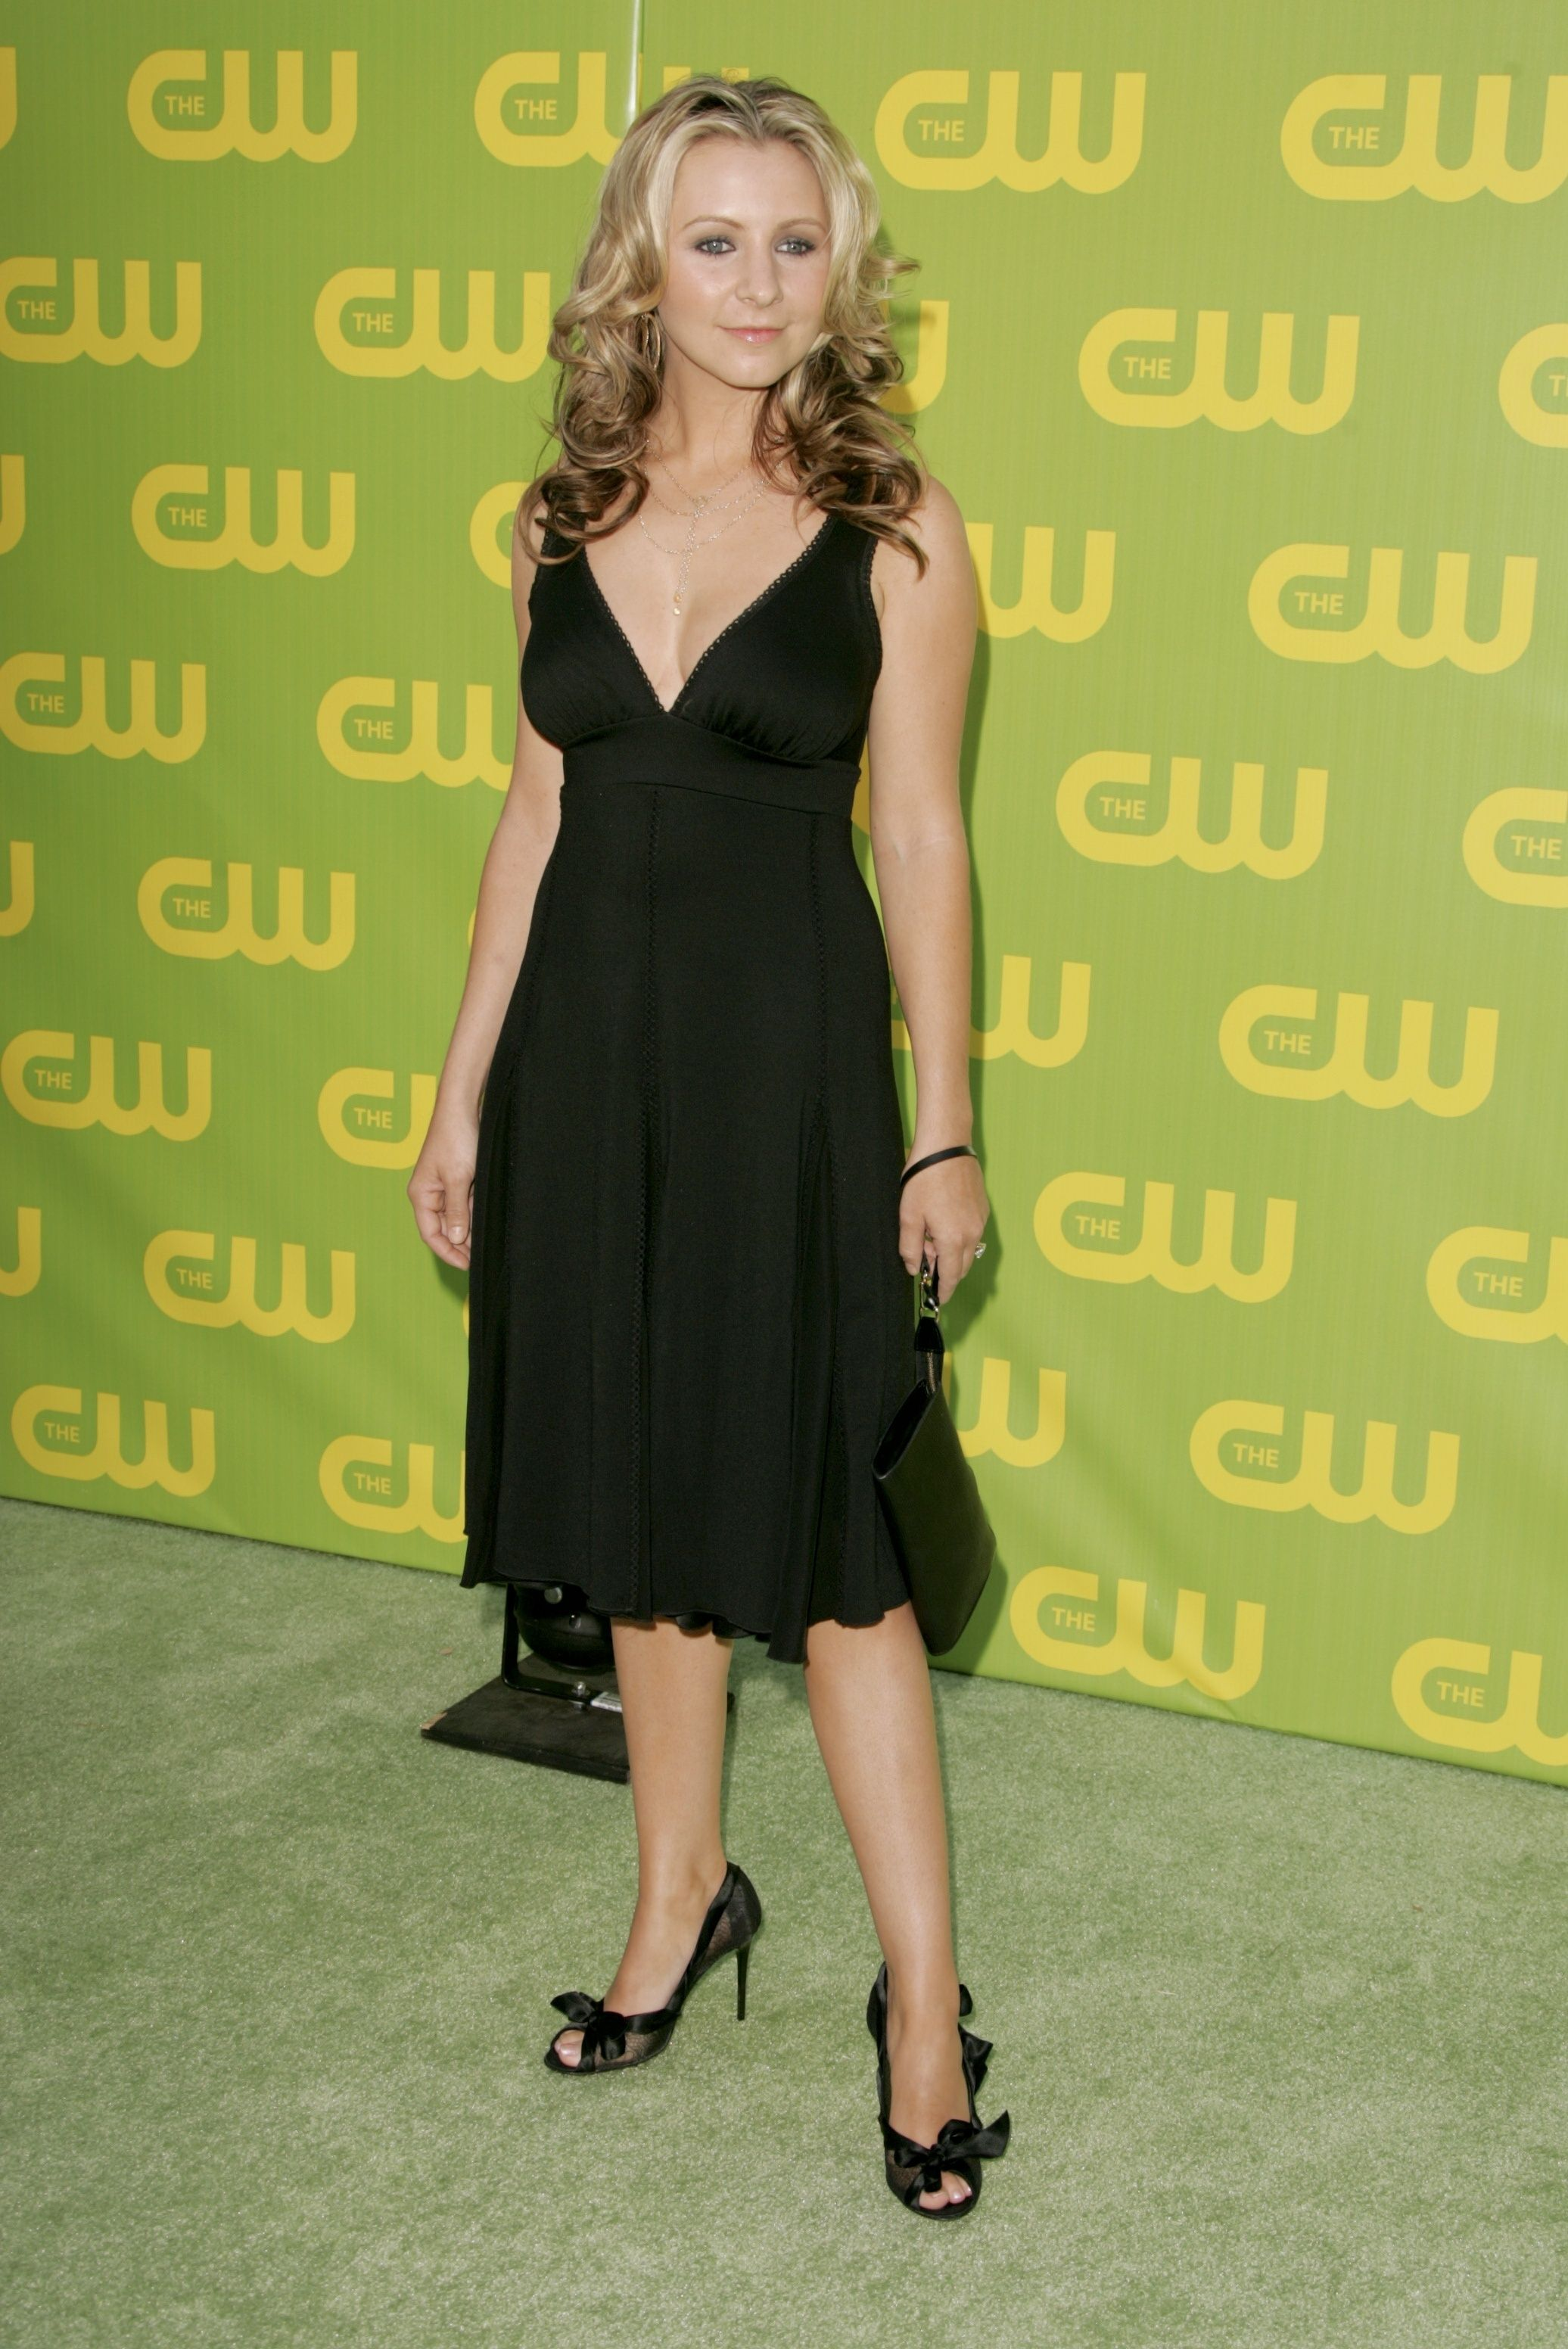 The-CW-Launch-Party-2006-beverley-mitchell   Red Carpet and Event ...